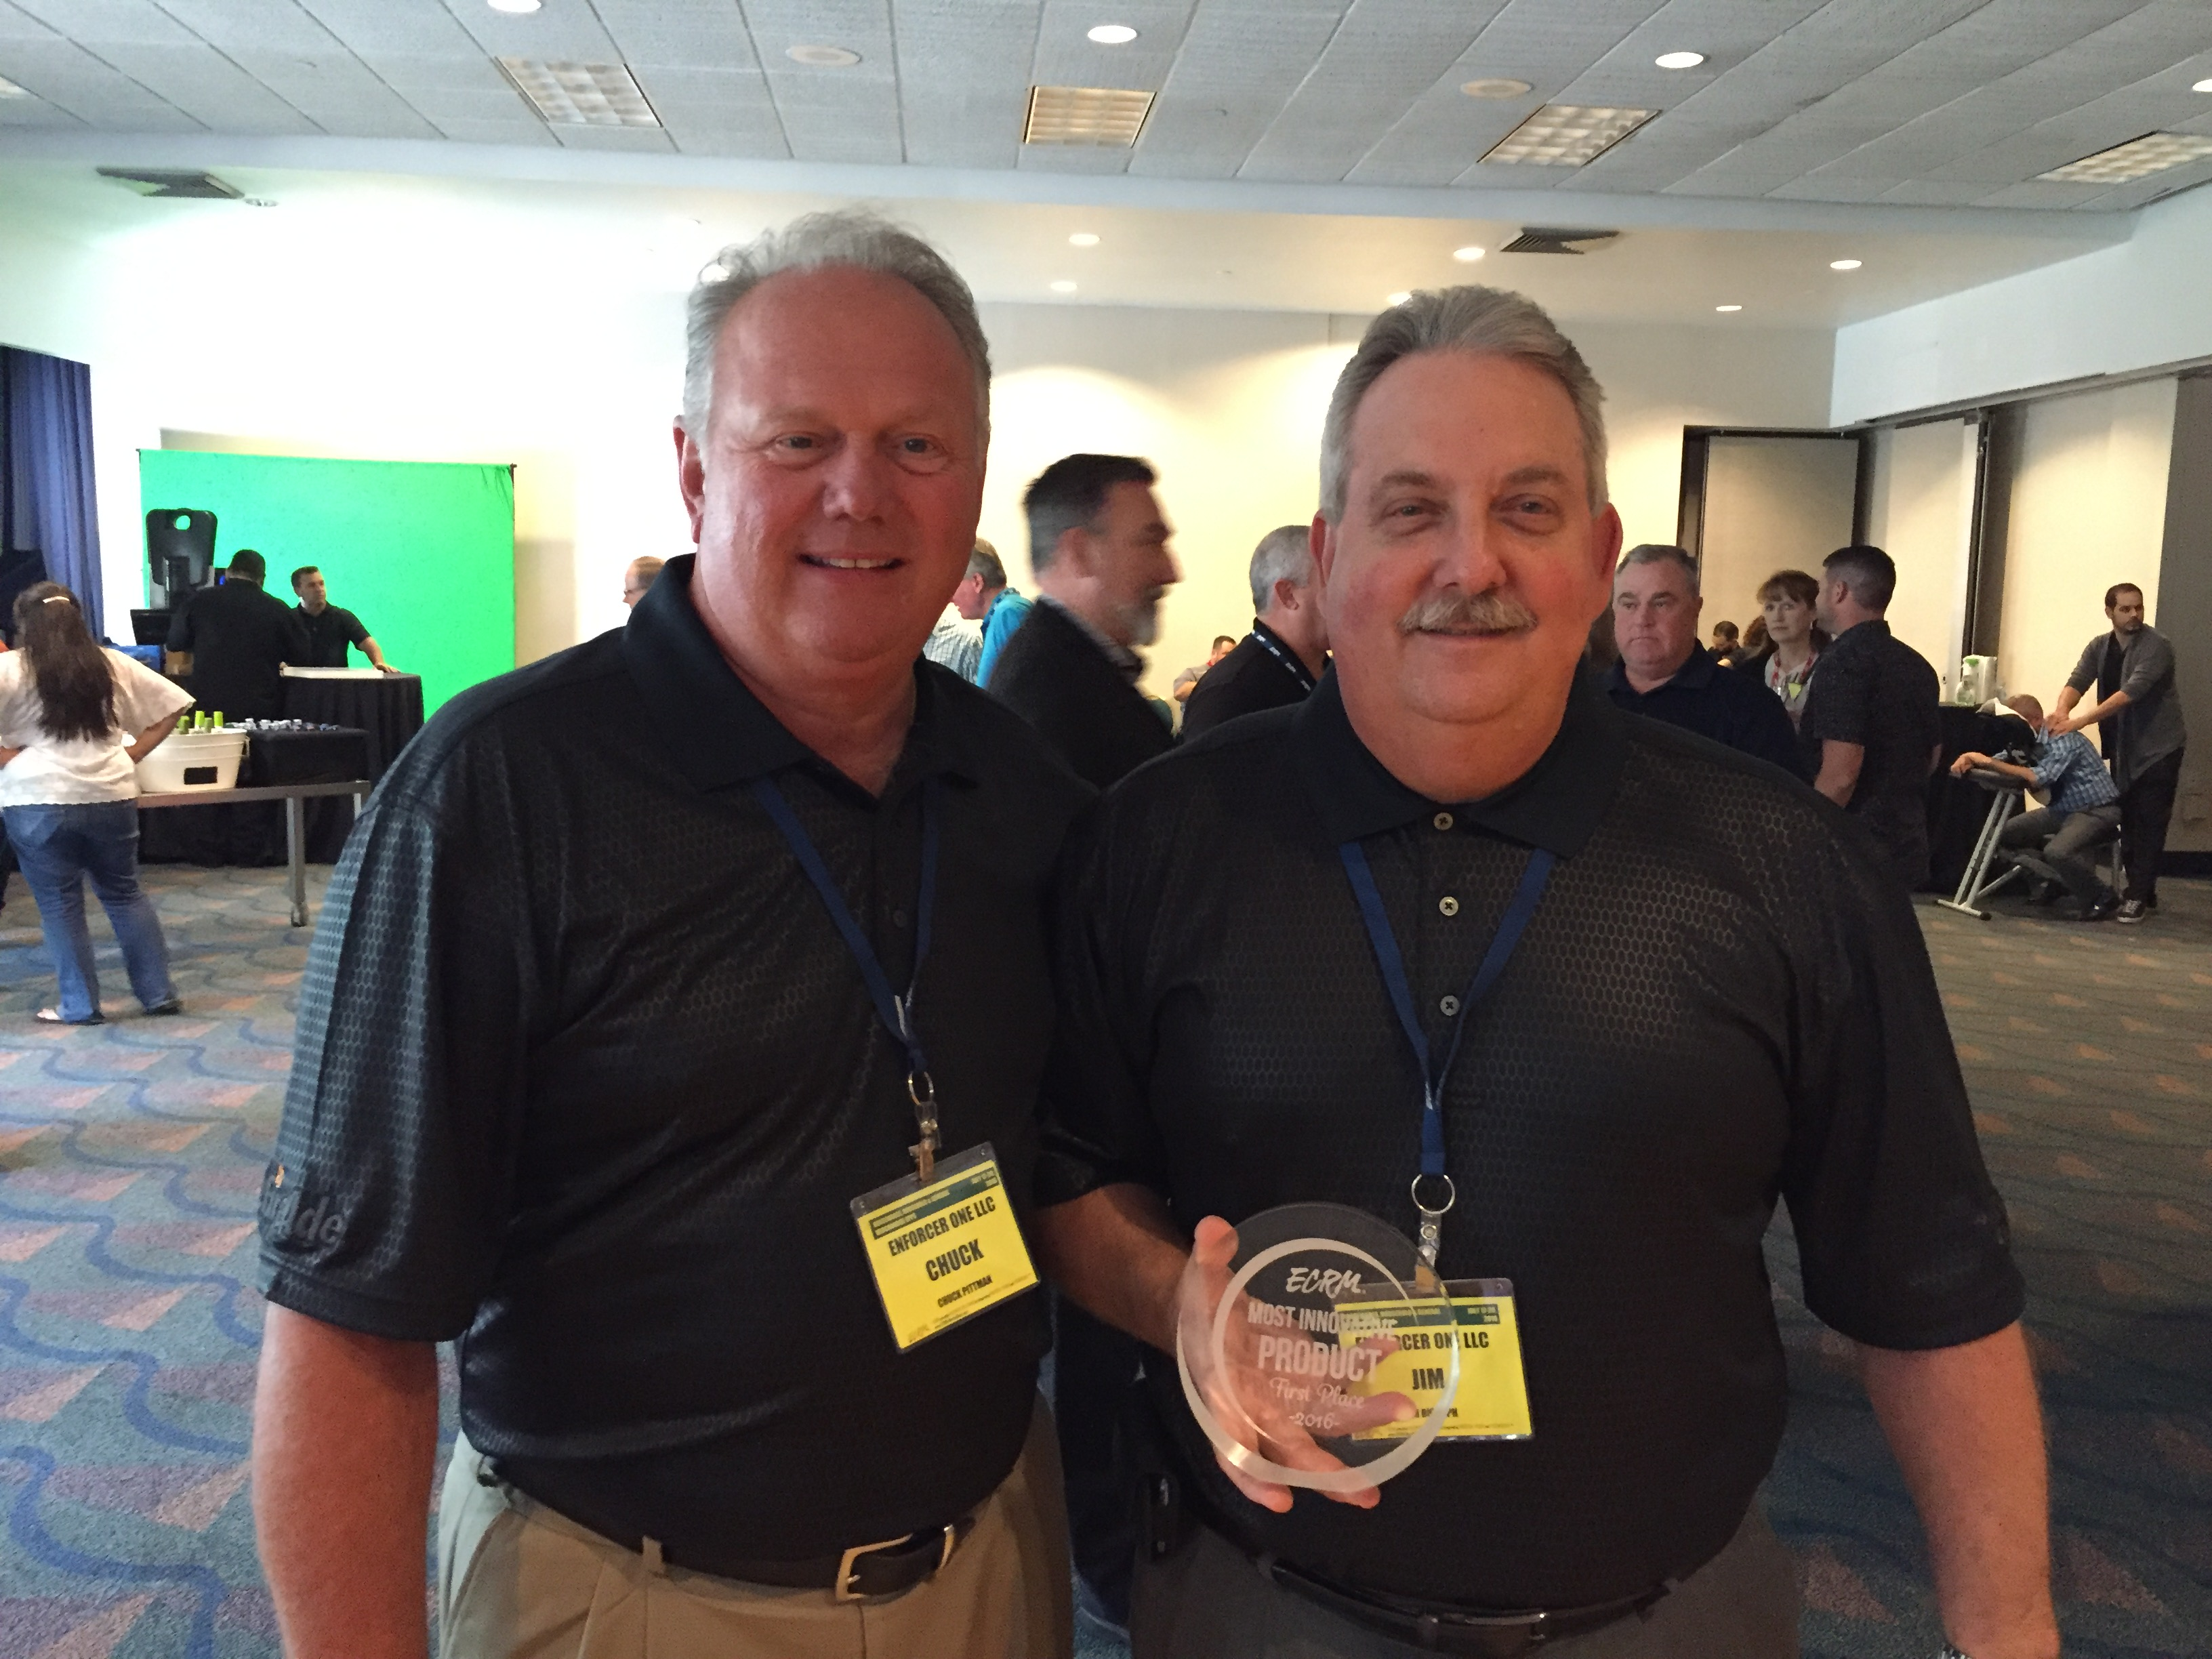 1st Place Winner Enforcer One. Pictured left to right; Chuck Pittman and Jim Rudolph.